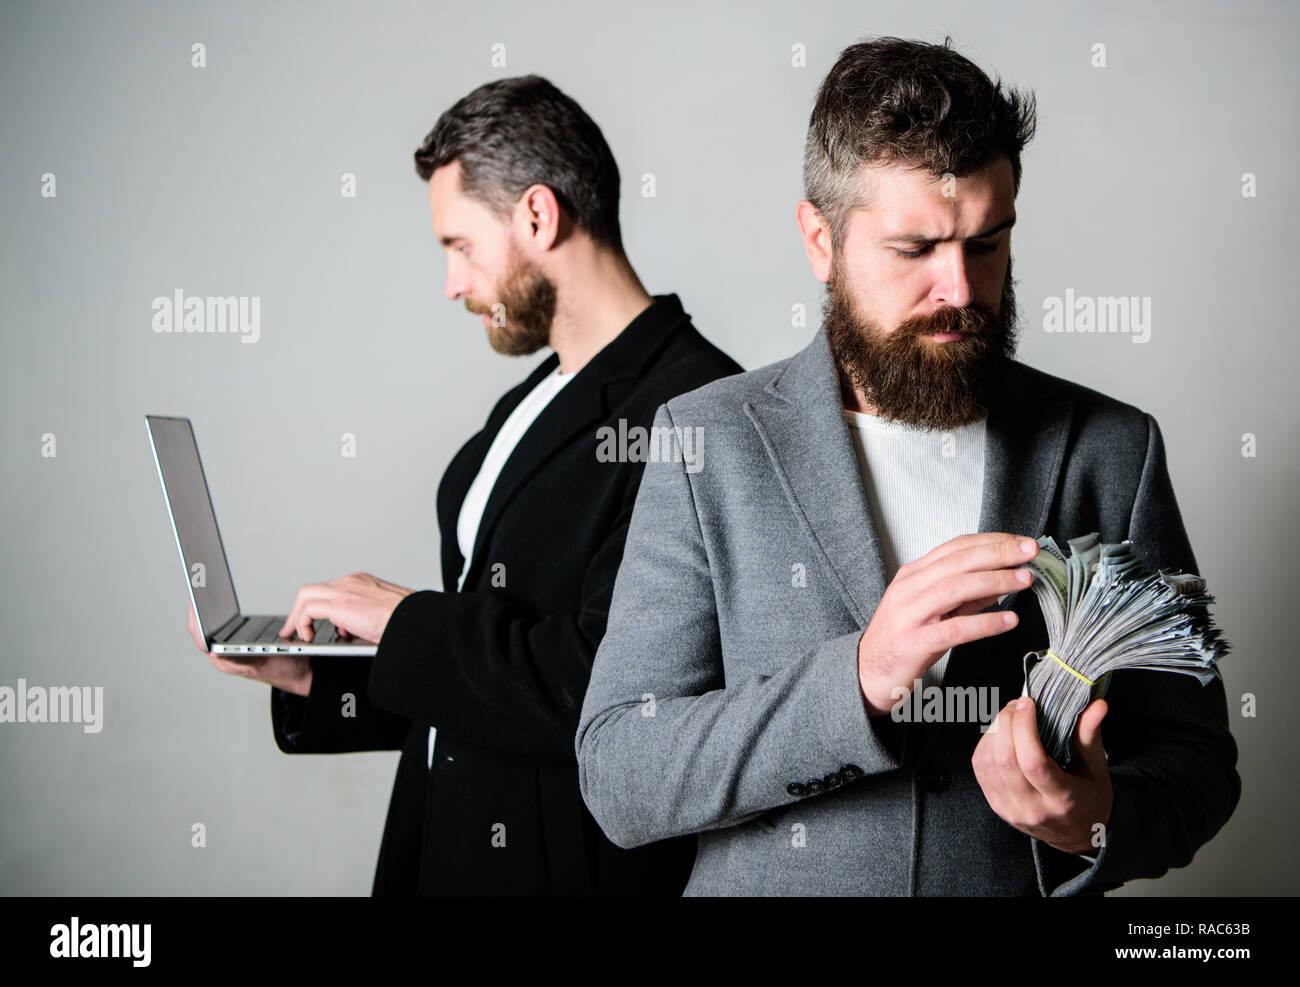 Developing applications. Digital technology. IT business. Online business. Earn money online business. They know how to make money. Team of web developer with laptop and sales manager with cash money. - Stock Image